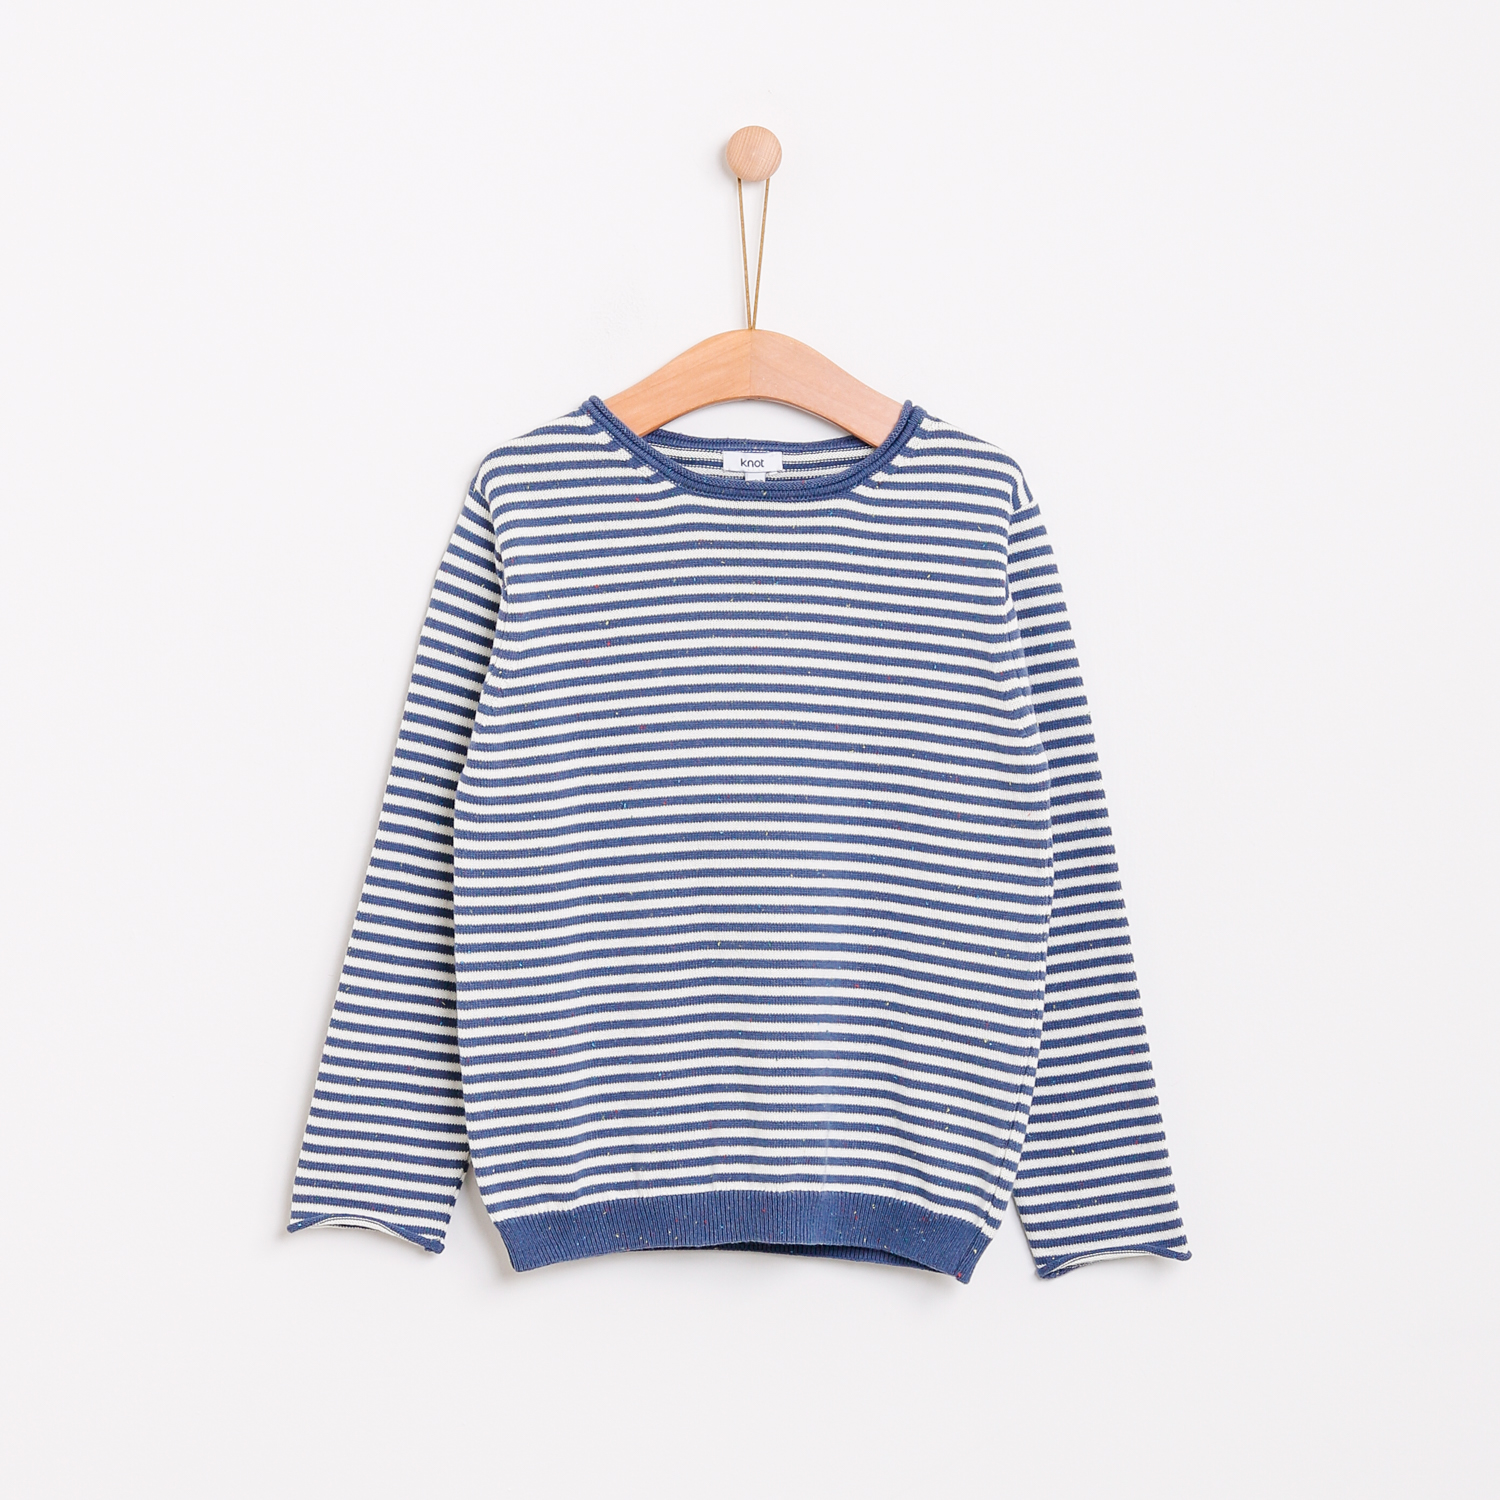 Camisola neppy stripes